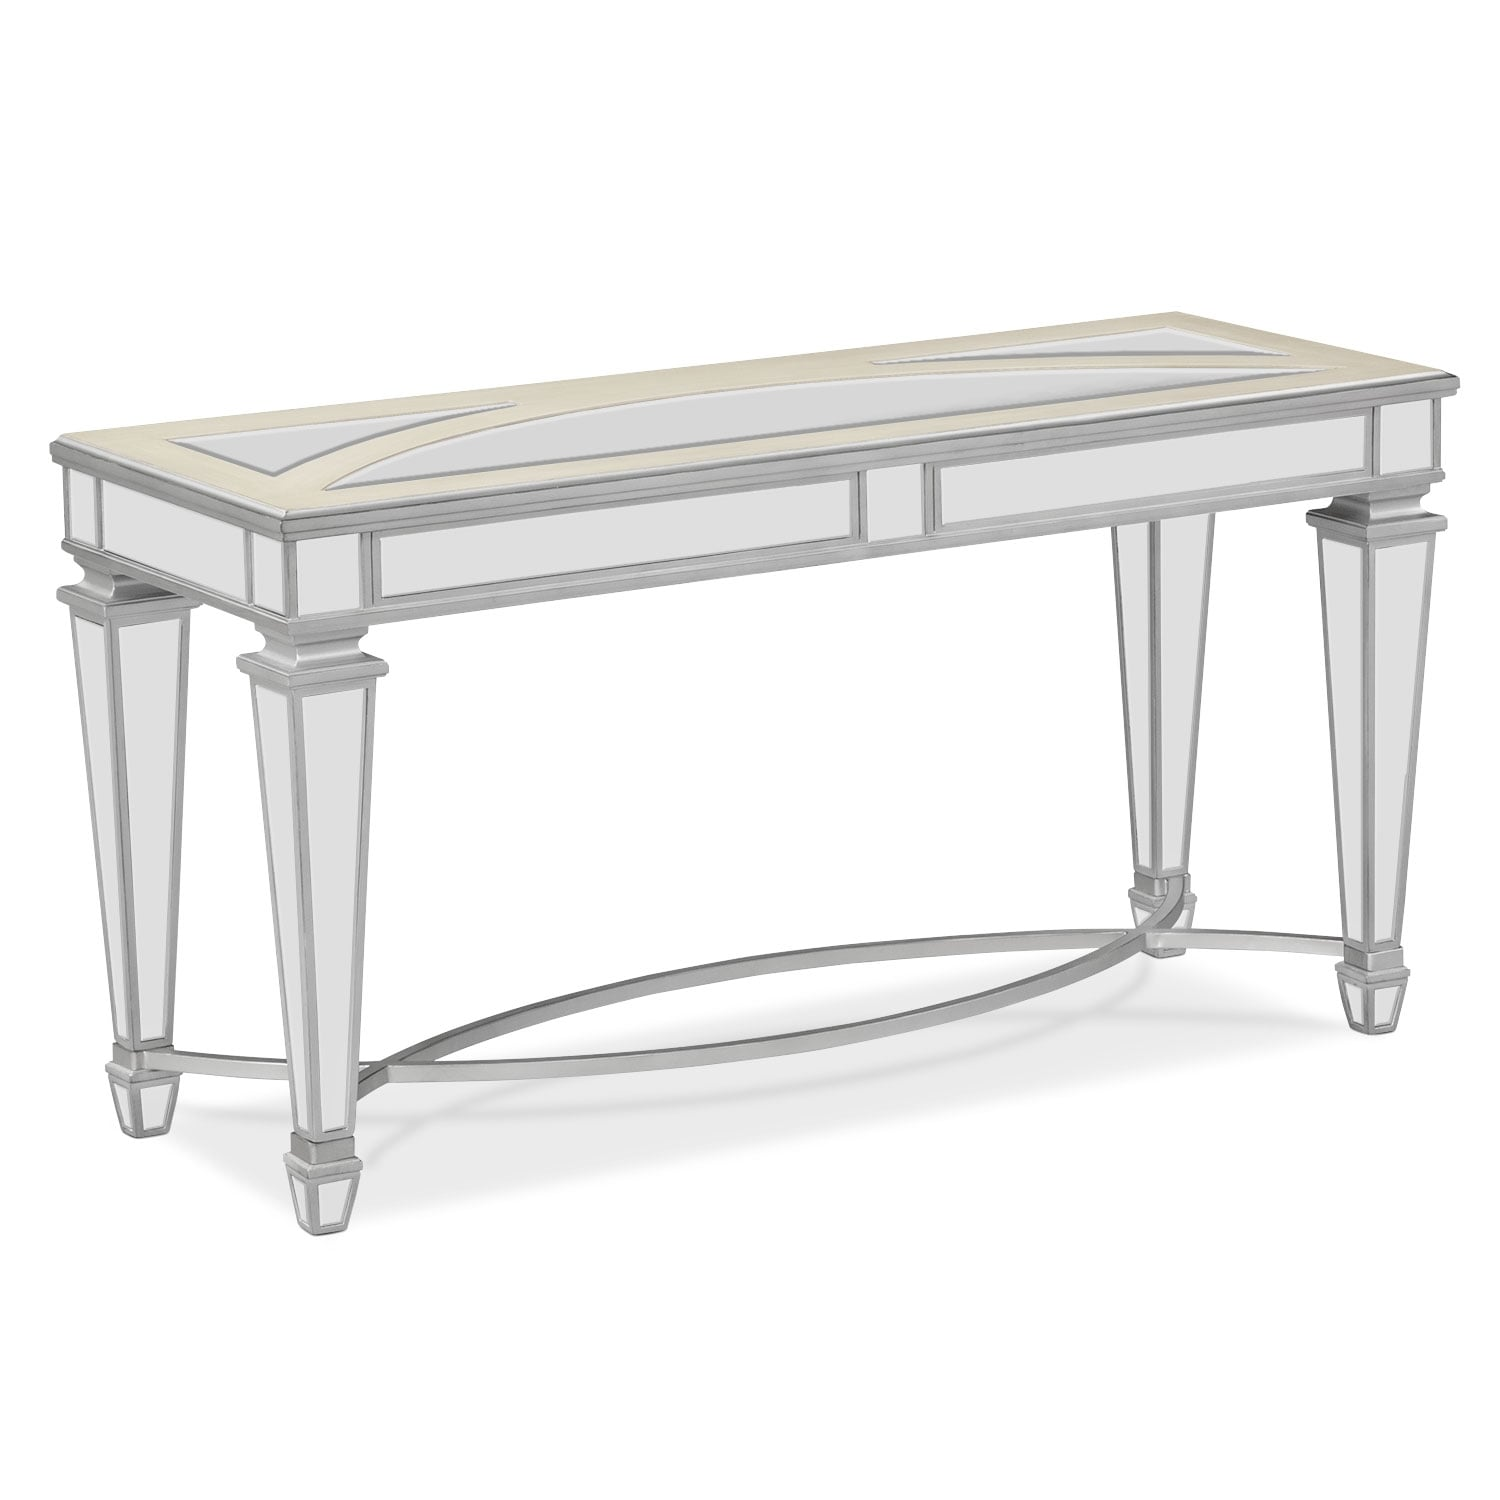 royale sofa table mirror value city furniture and mattresses rh valuecityfurniture com mirrored sofa table furniture mirrored sofa table furniture